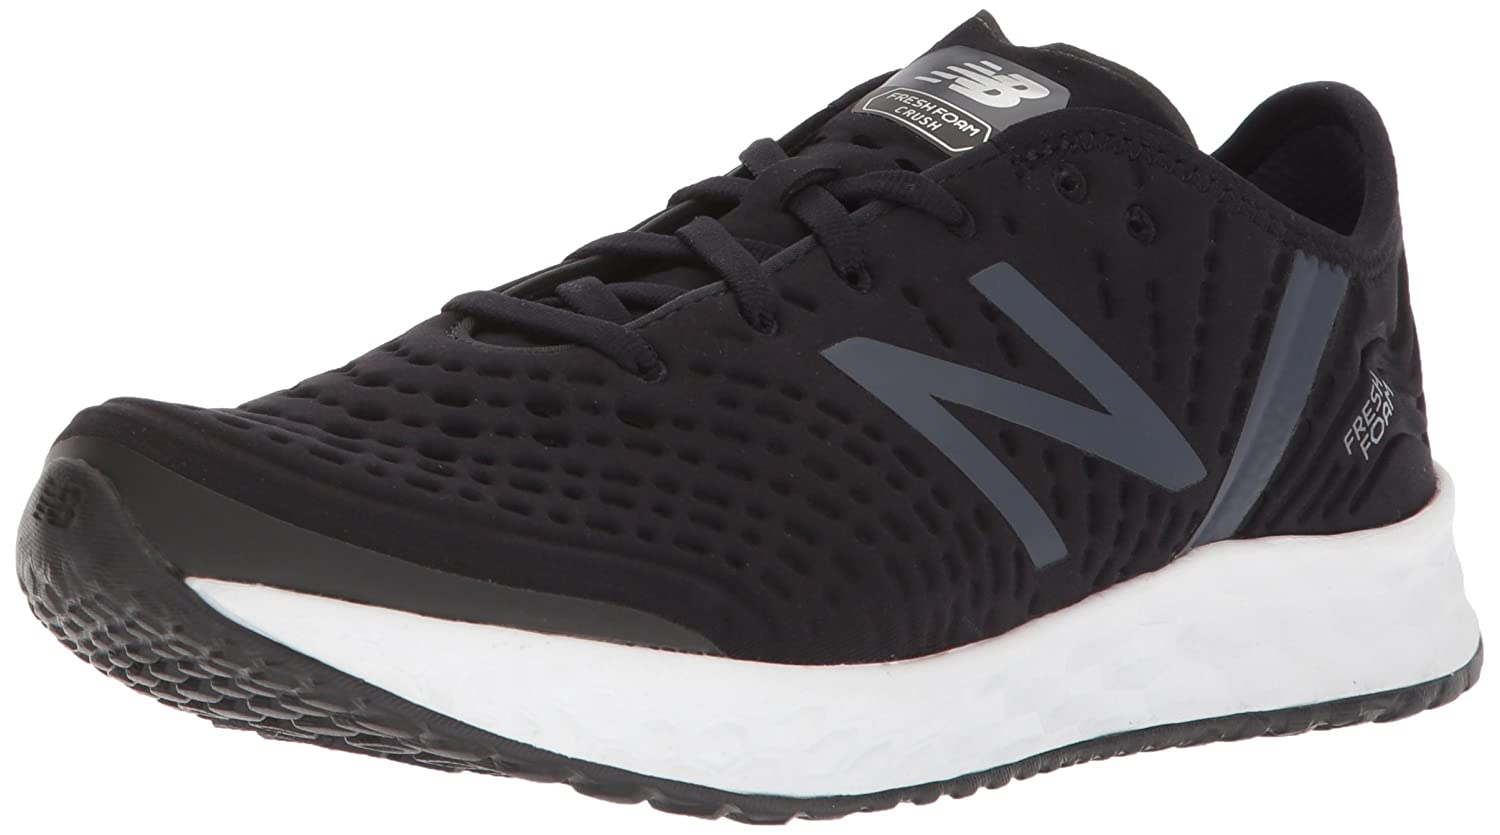 New Balance Women's Fresh Foam Crush V1 Cross Trainer B06XRSVLK3 9 D US|Black